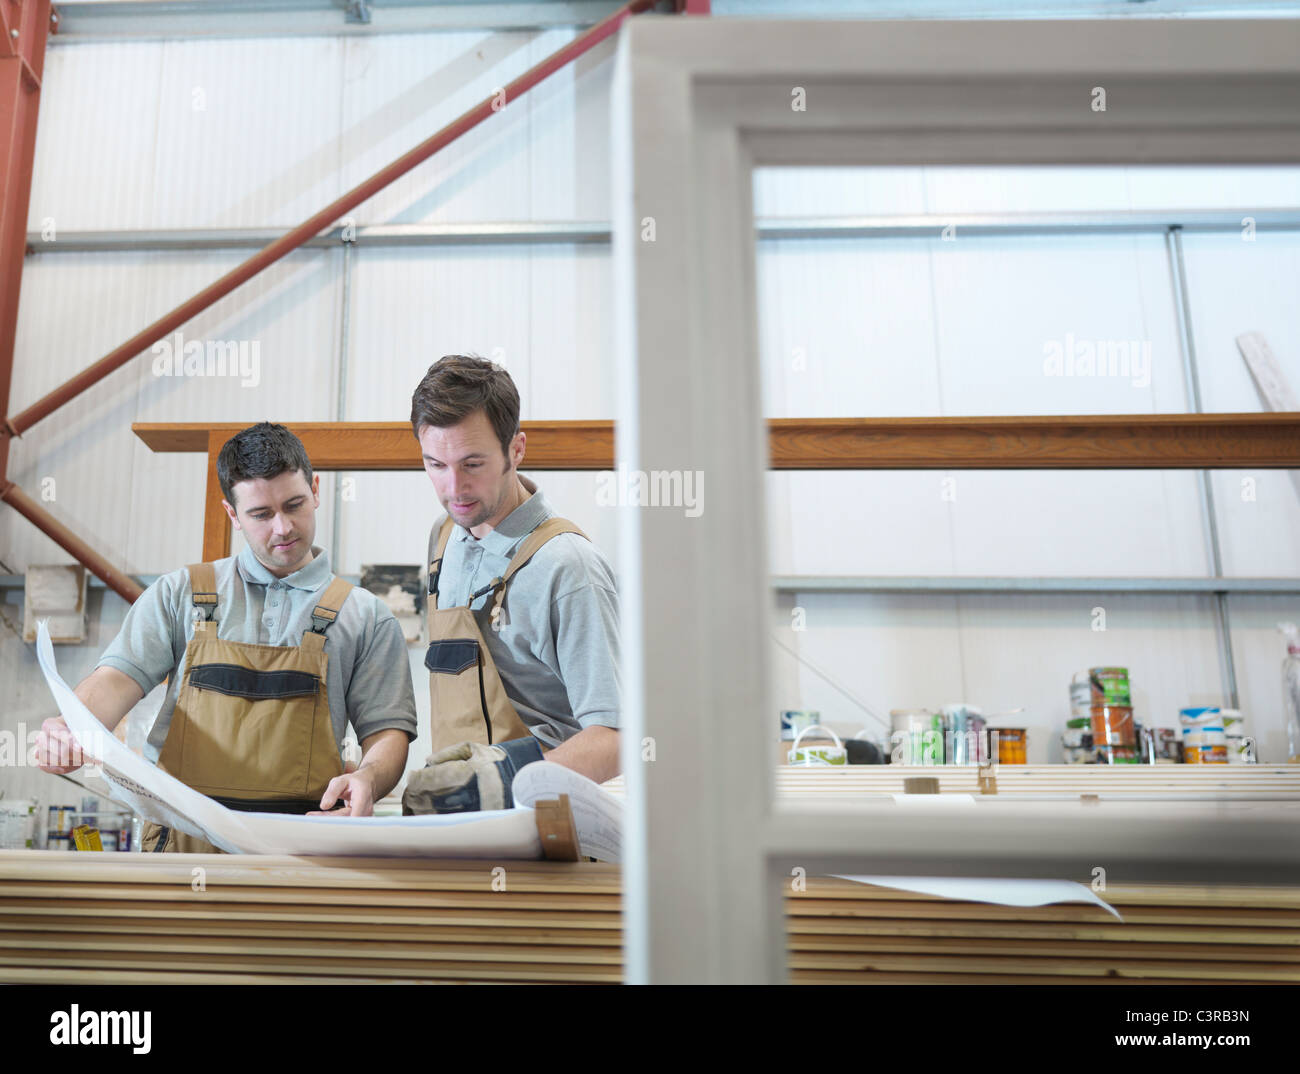 Woodworkers discussing plans - Stock Image